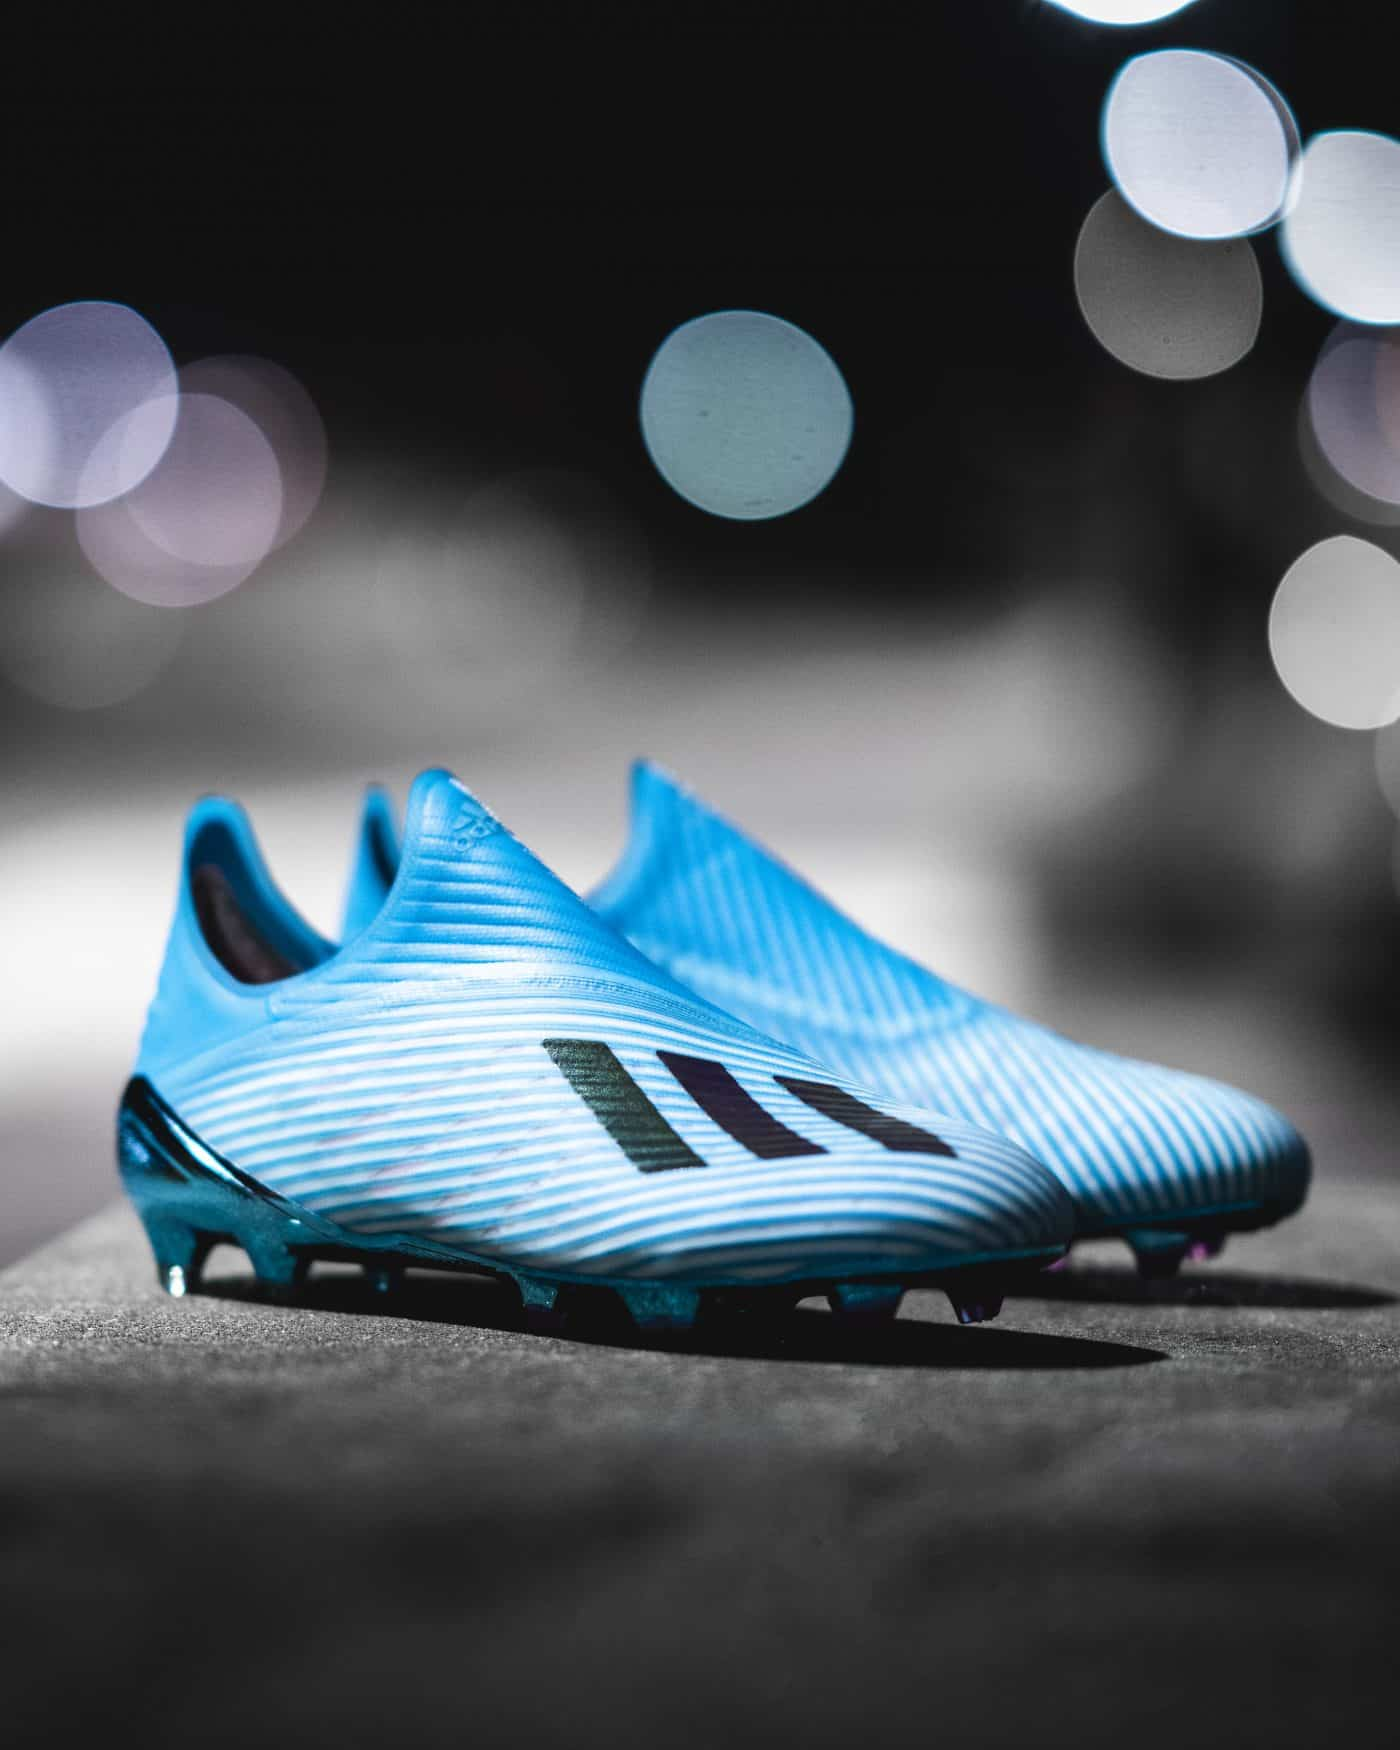 adidas-x-19-pack-hard-wired-juillet-2019-8